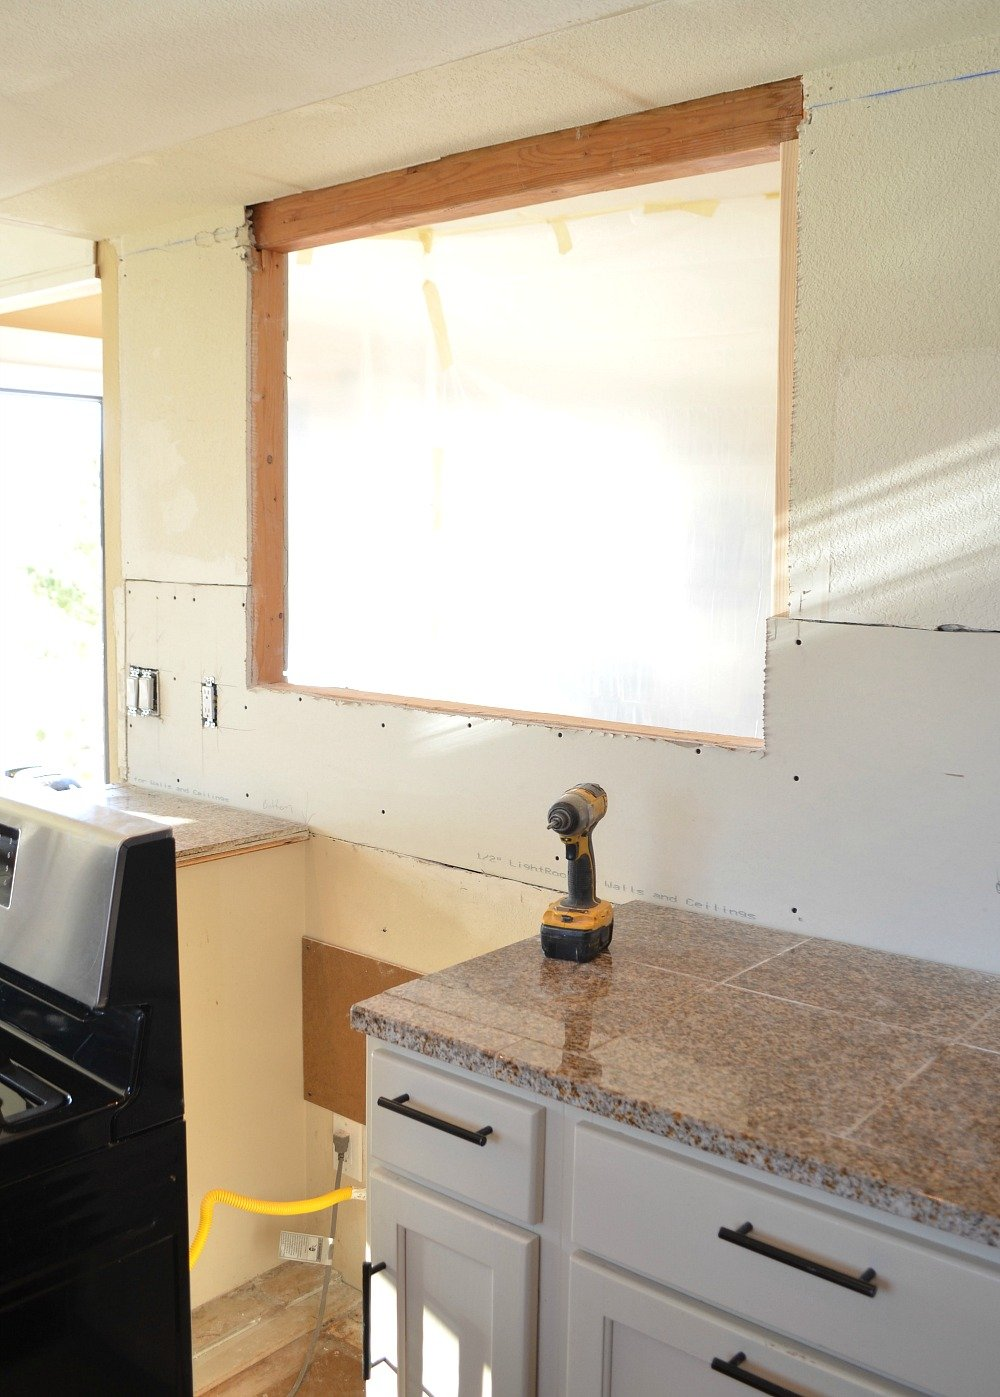 Kitchen Remodel Progress! Building a passthrough in a load bearing wall.